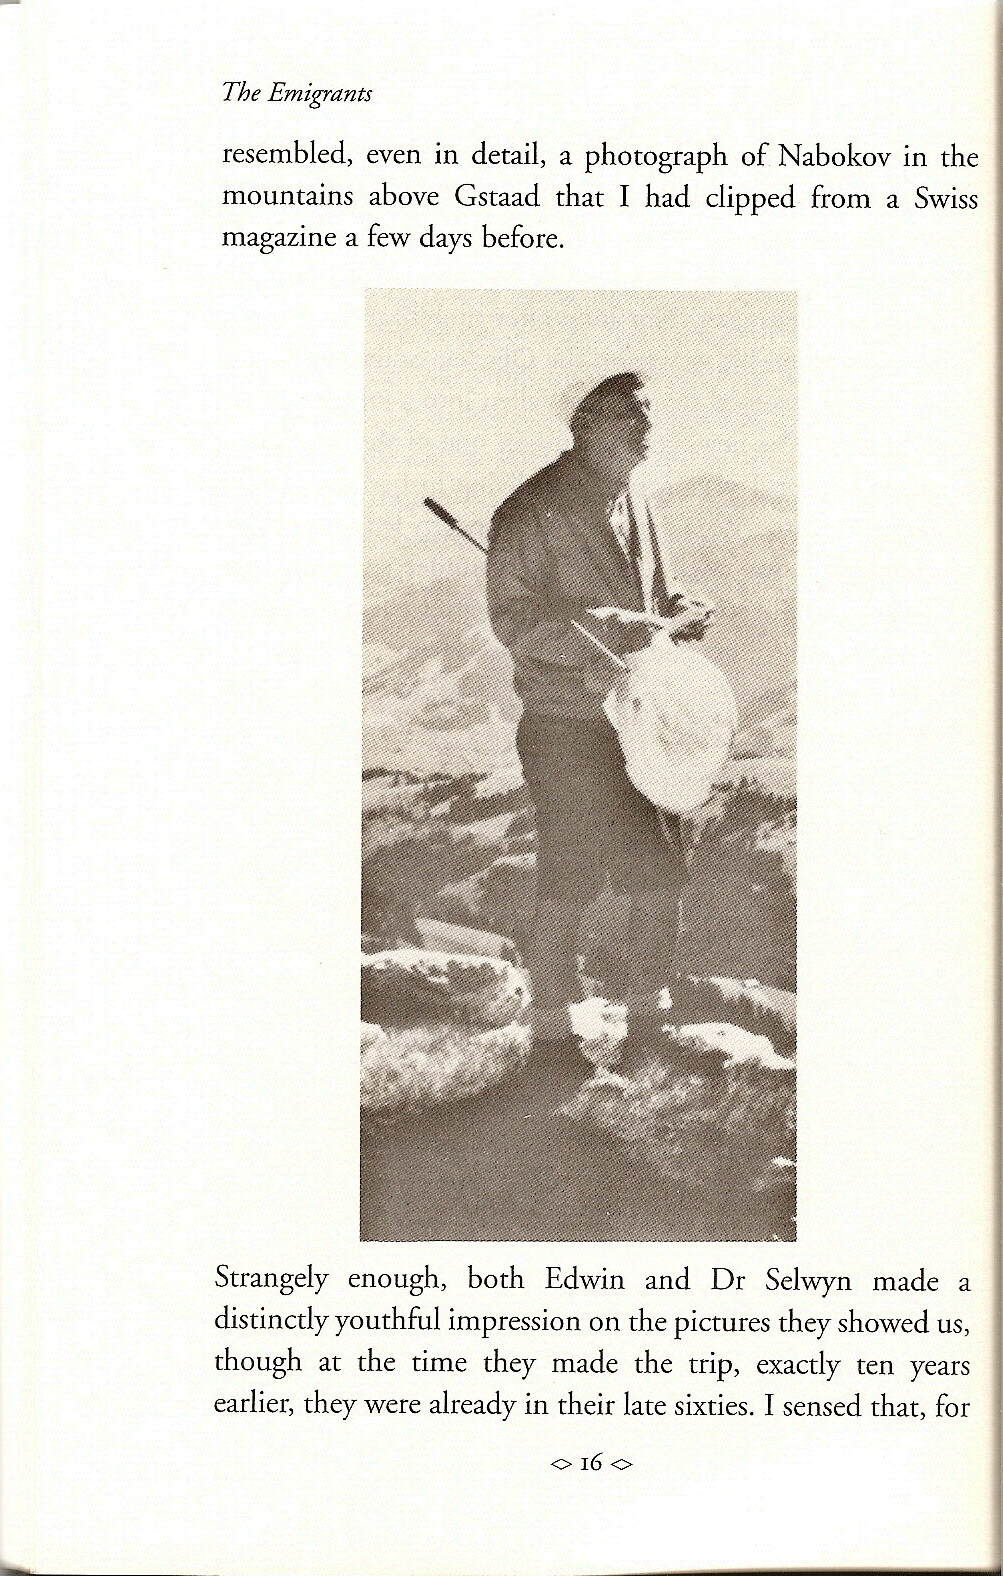 Nabokov with Butterfly Net